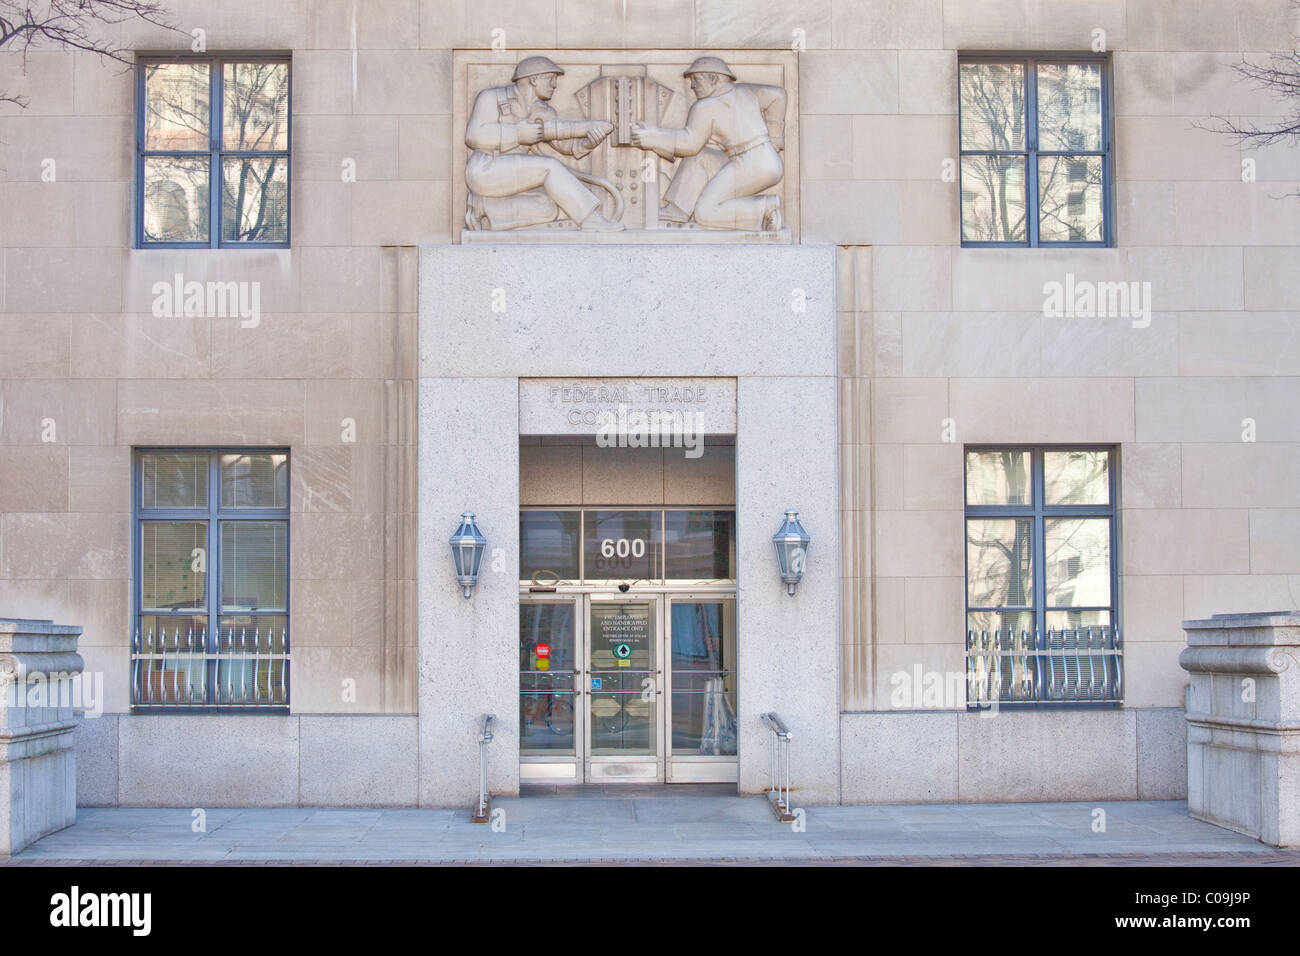 FTC, Federal Trade Commission Building in Washington DC - Stock Image